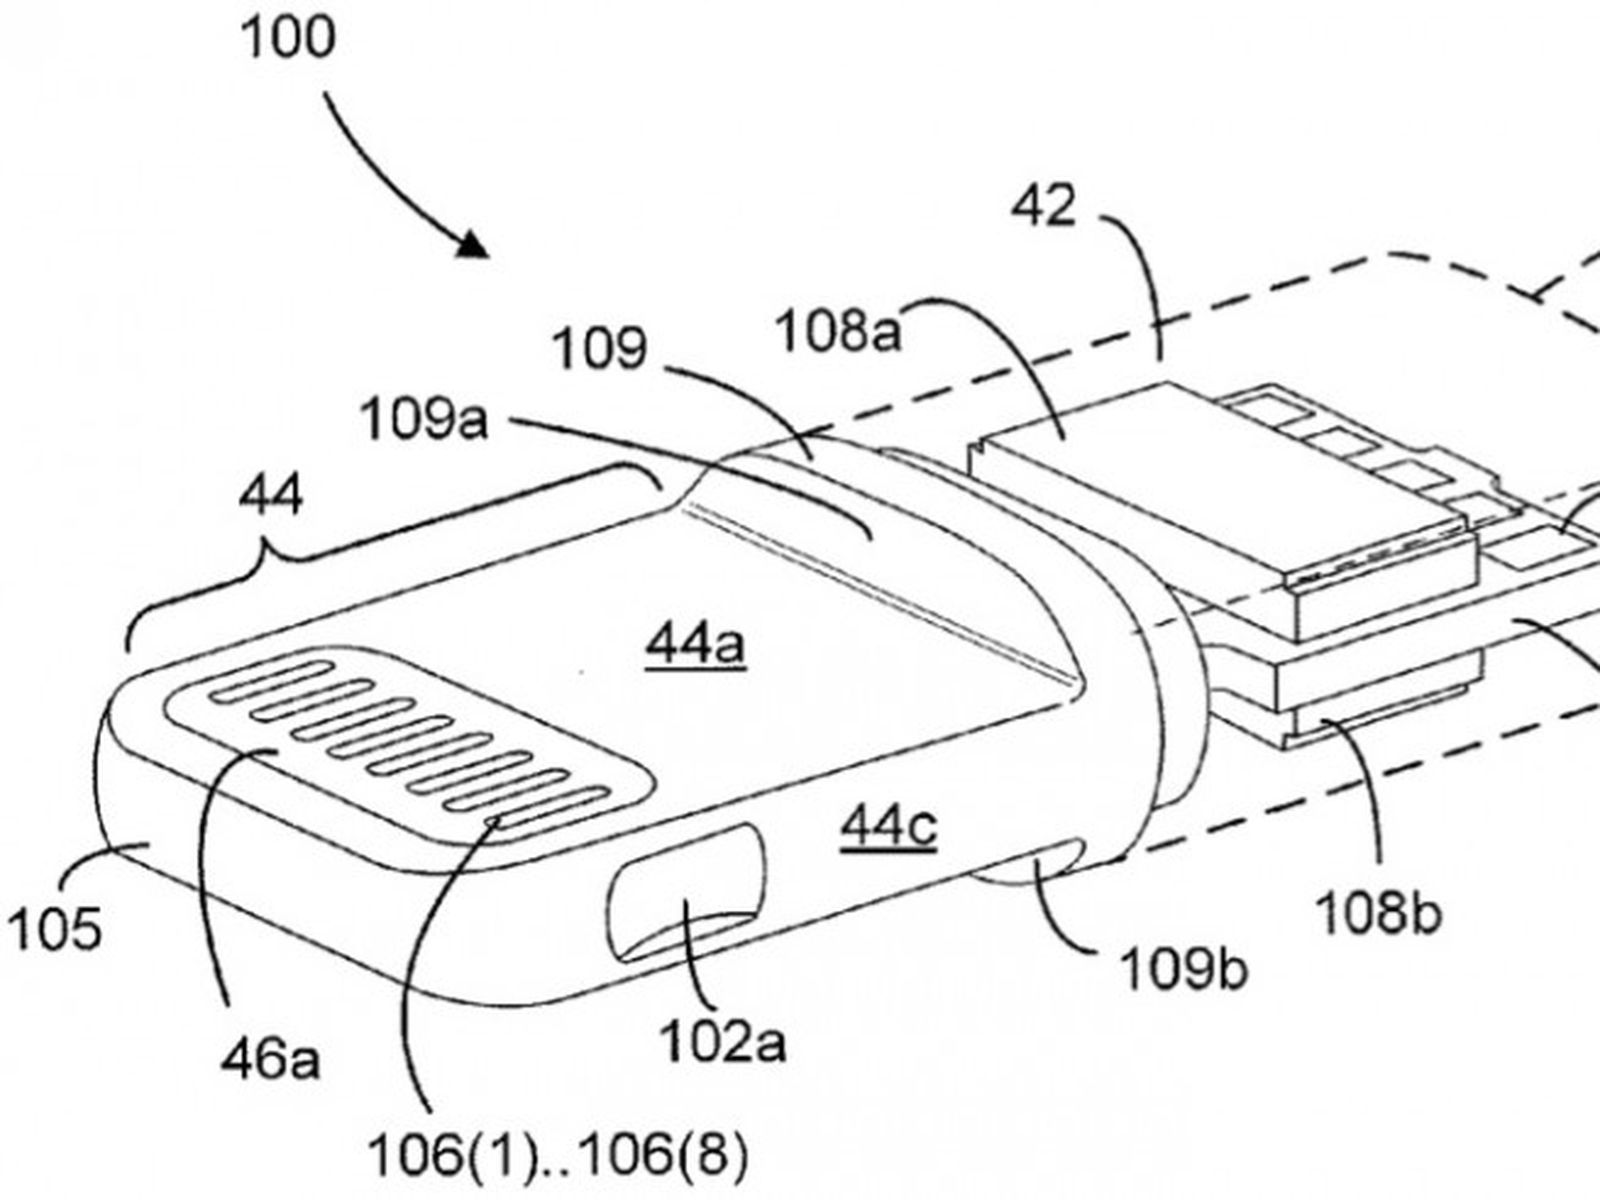 apple's lightning connector detailed in newly-published patent applications  - macrumors  macrumors